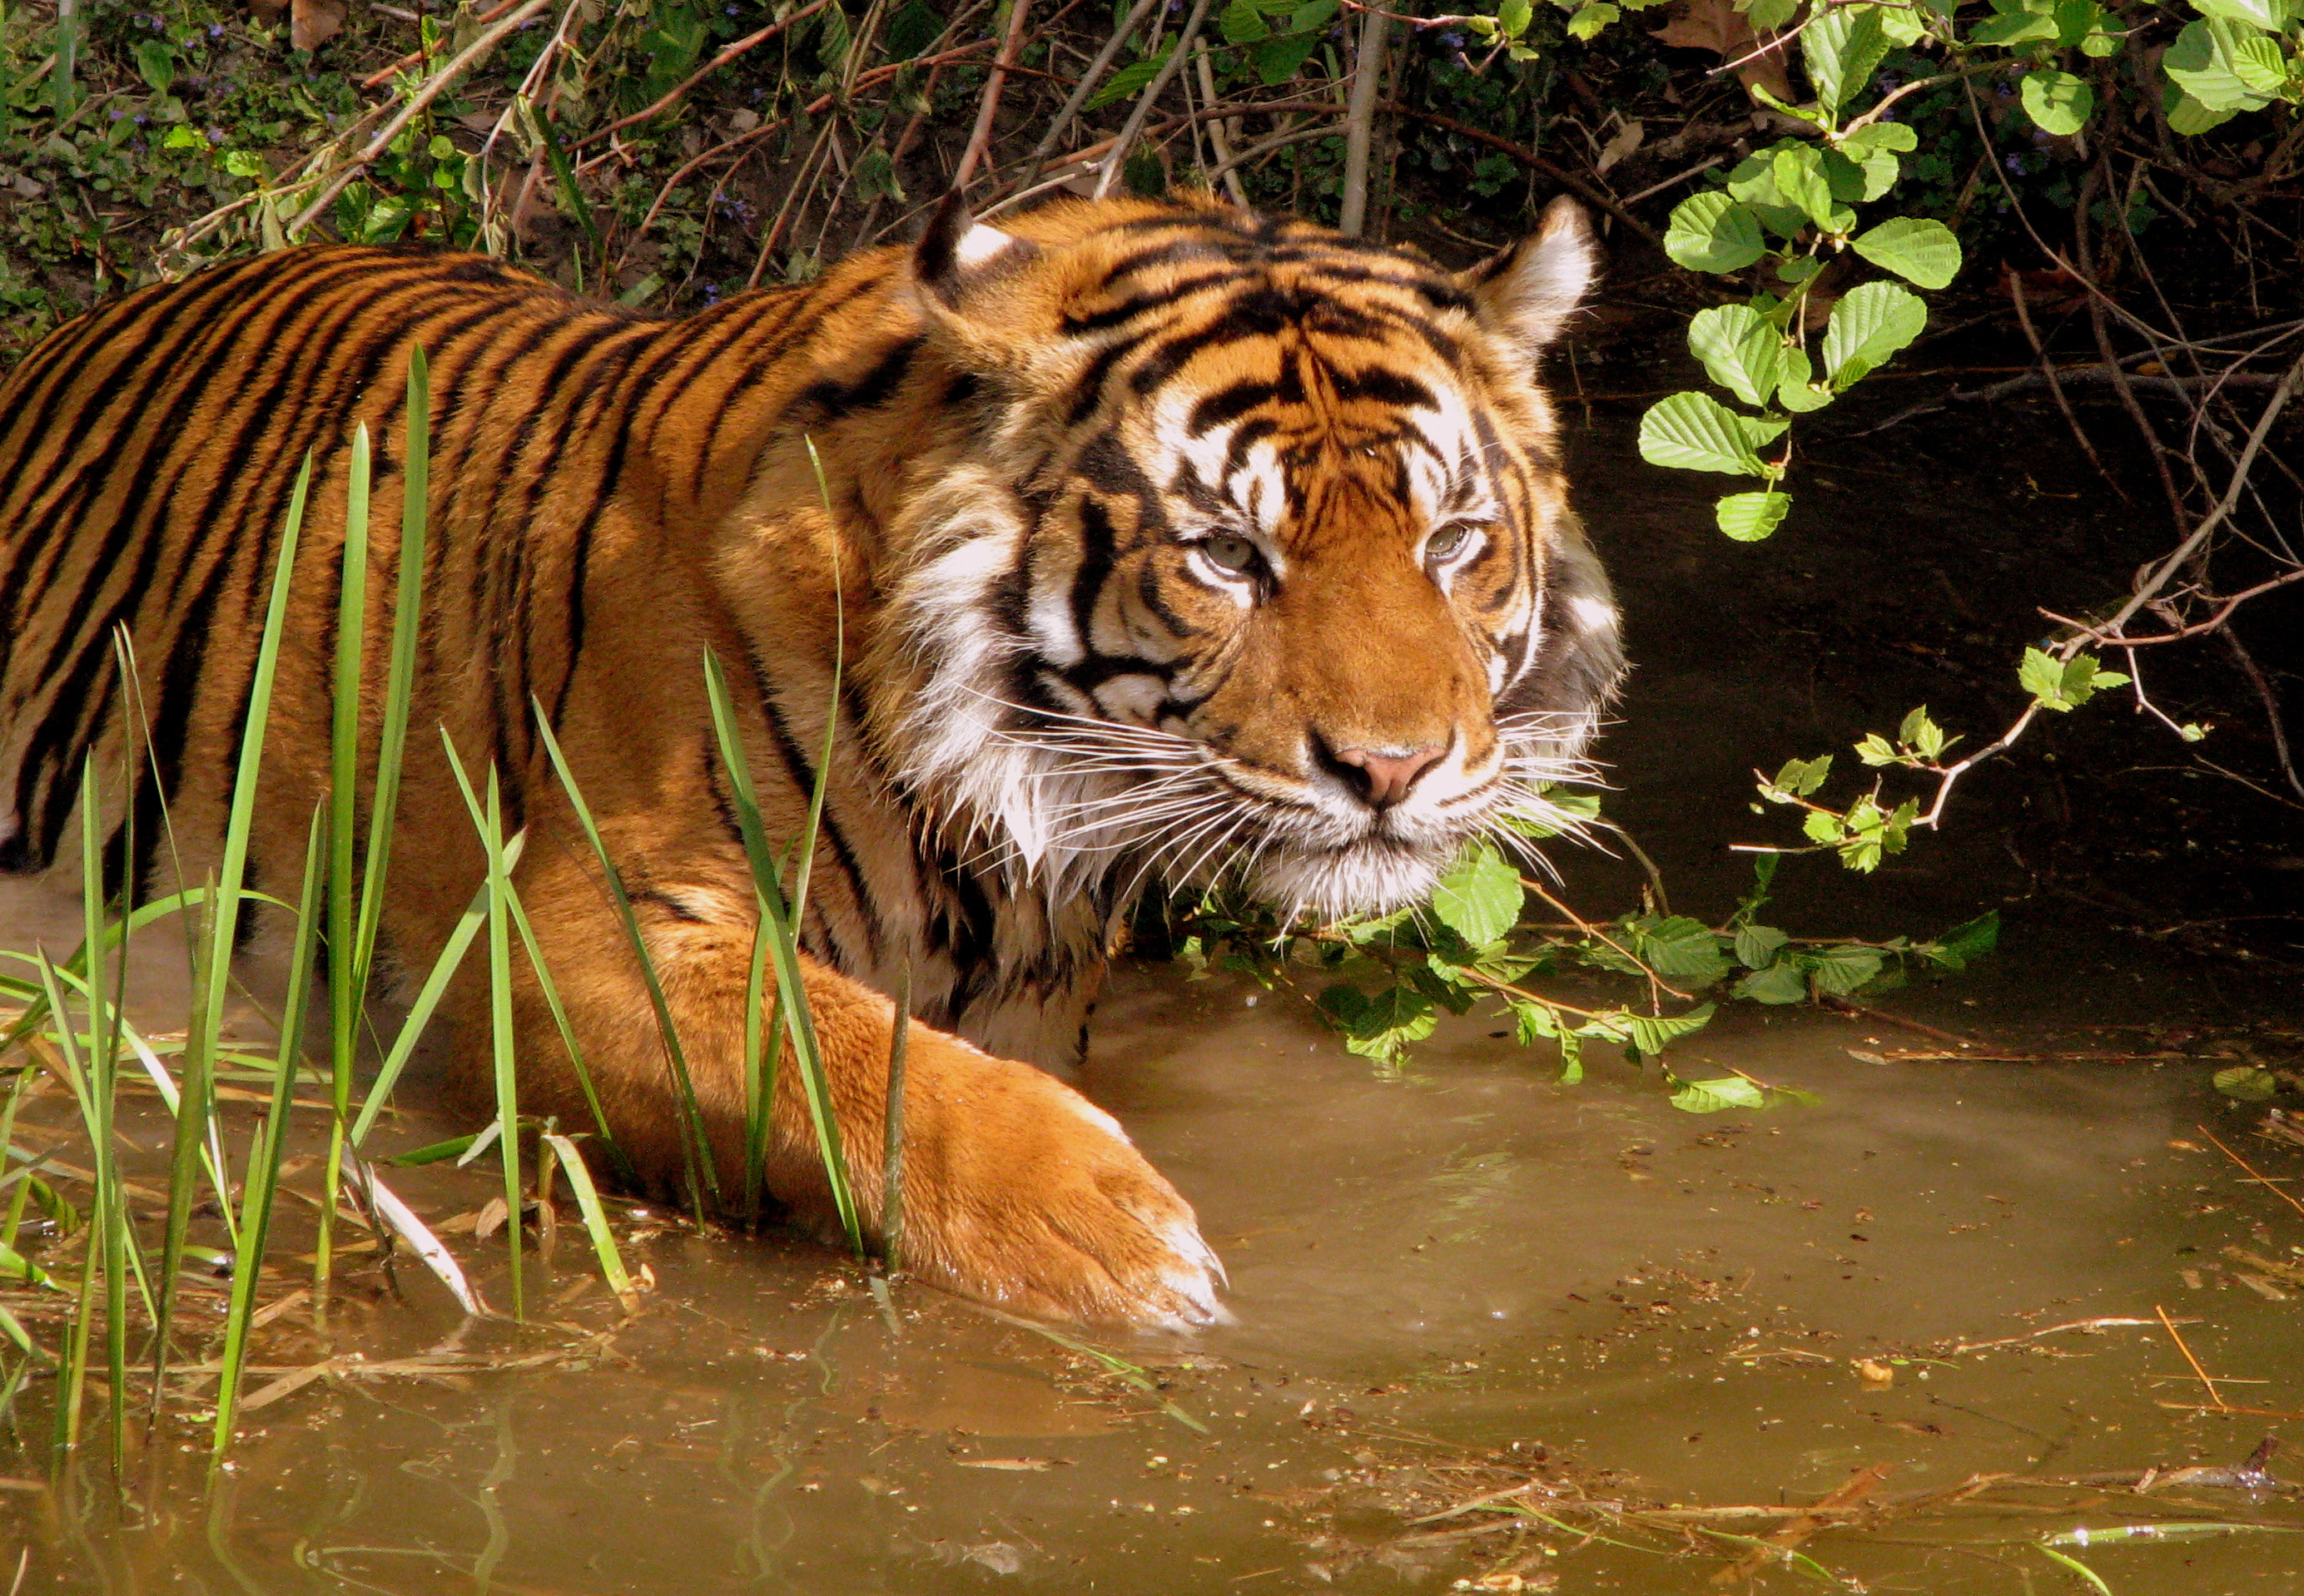 http://upload.wikimedia.org/wikipedia/commons/2/23/Tiger_2.jpg